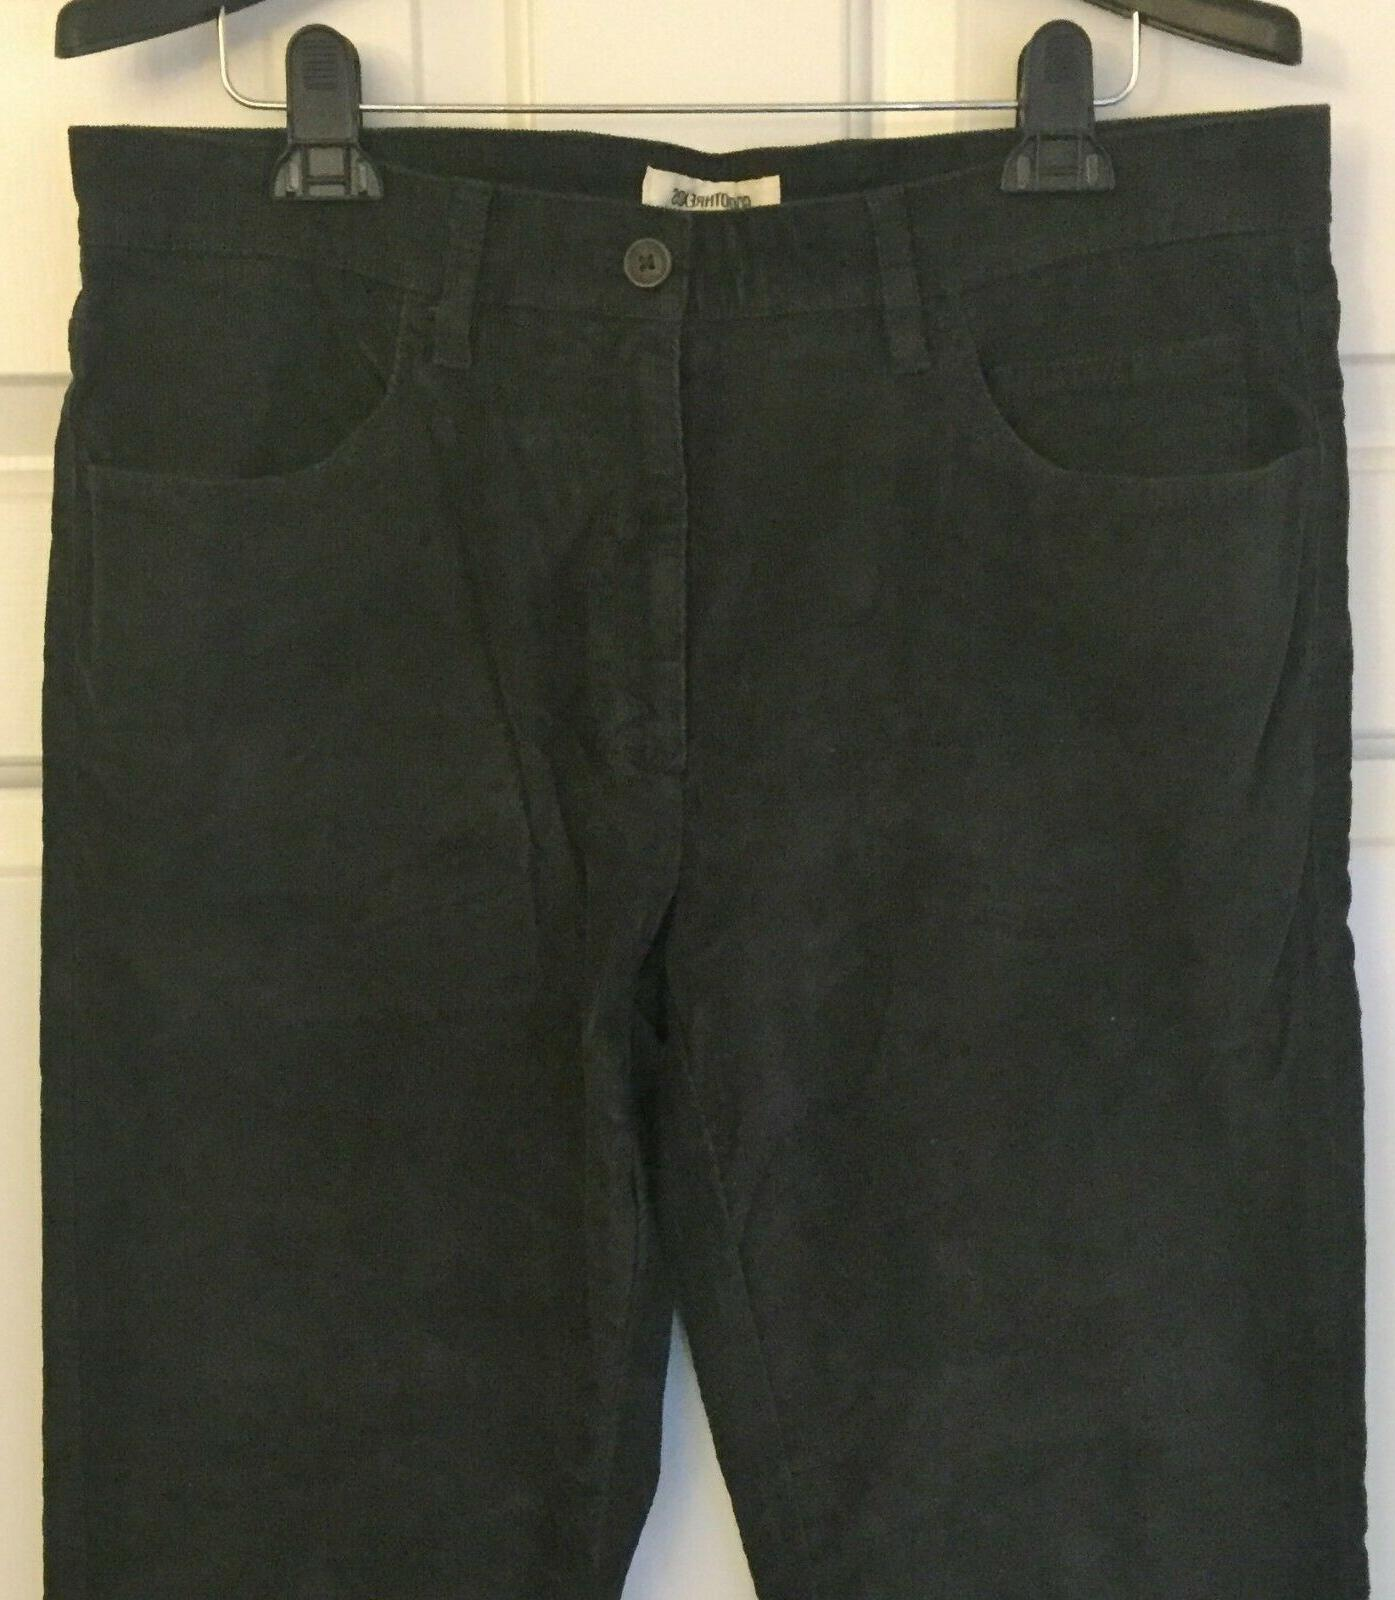 Goodthreads Pocket Pants Gray 34W x